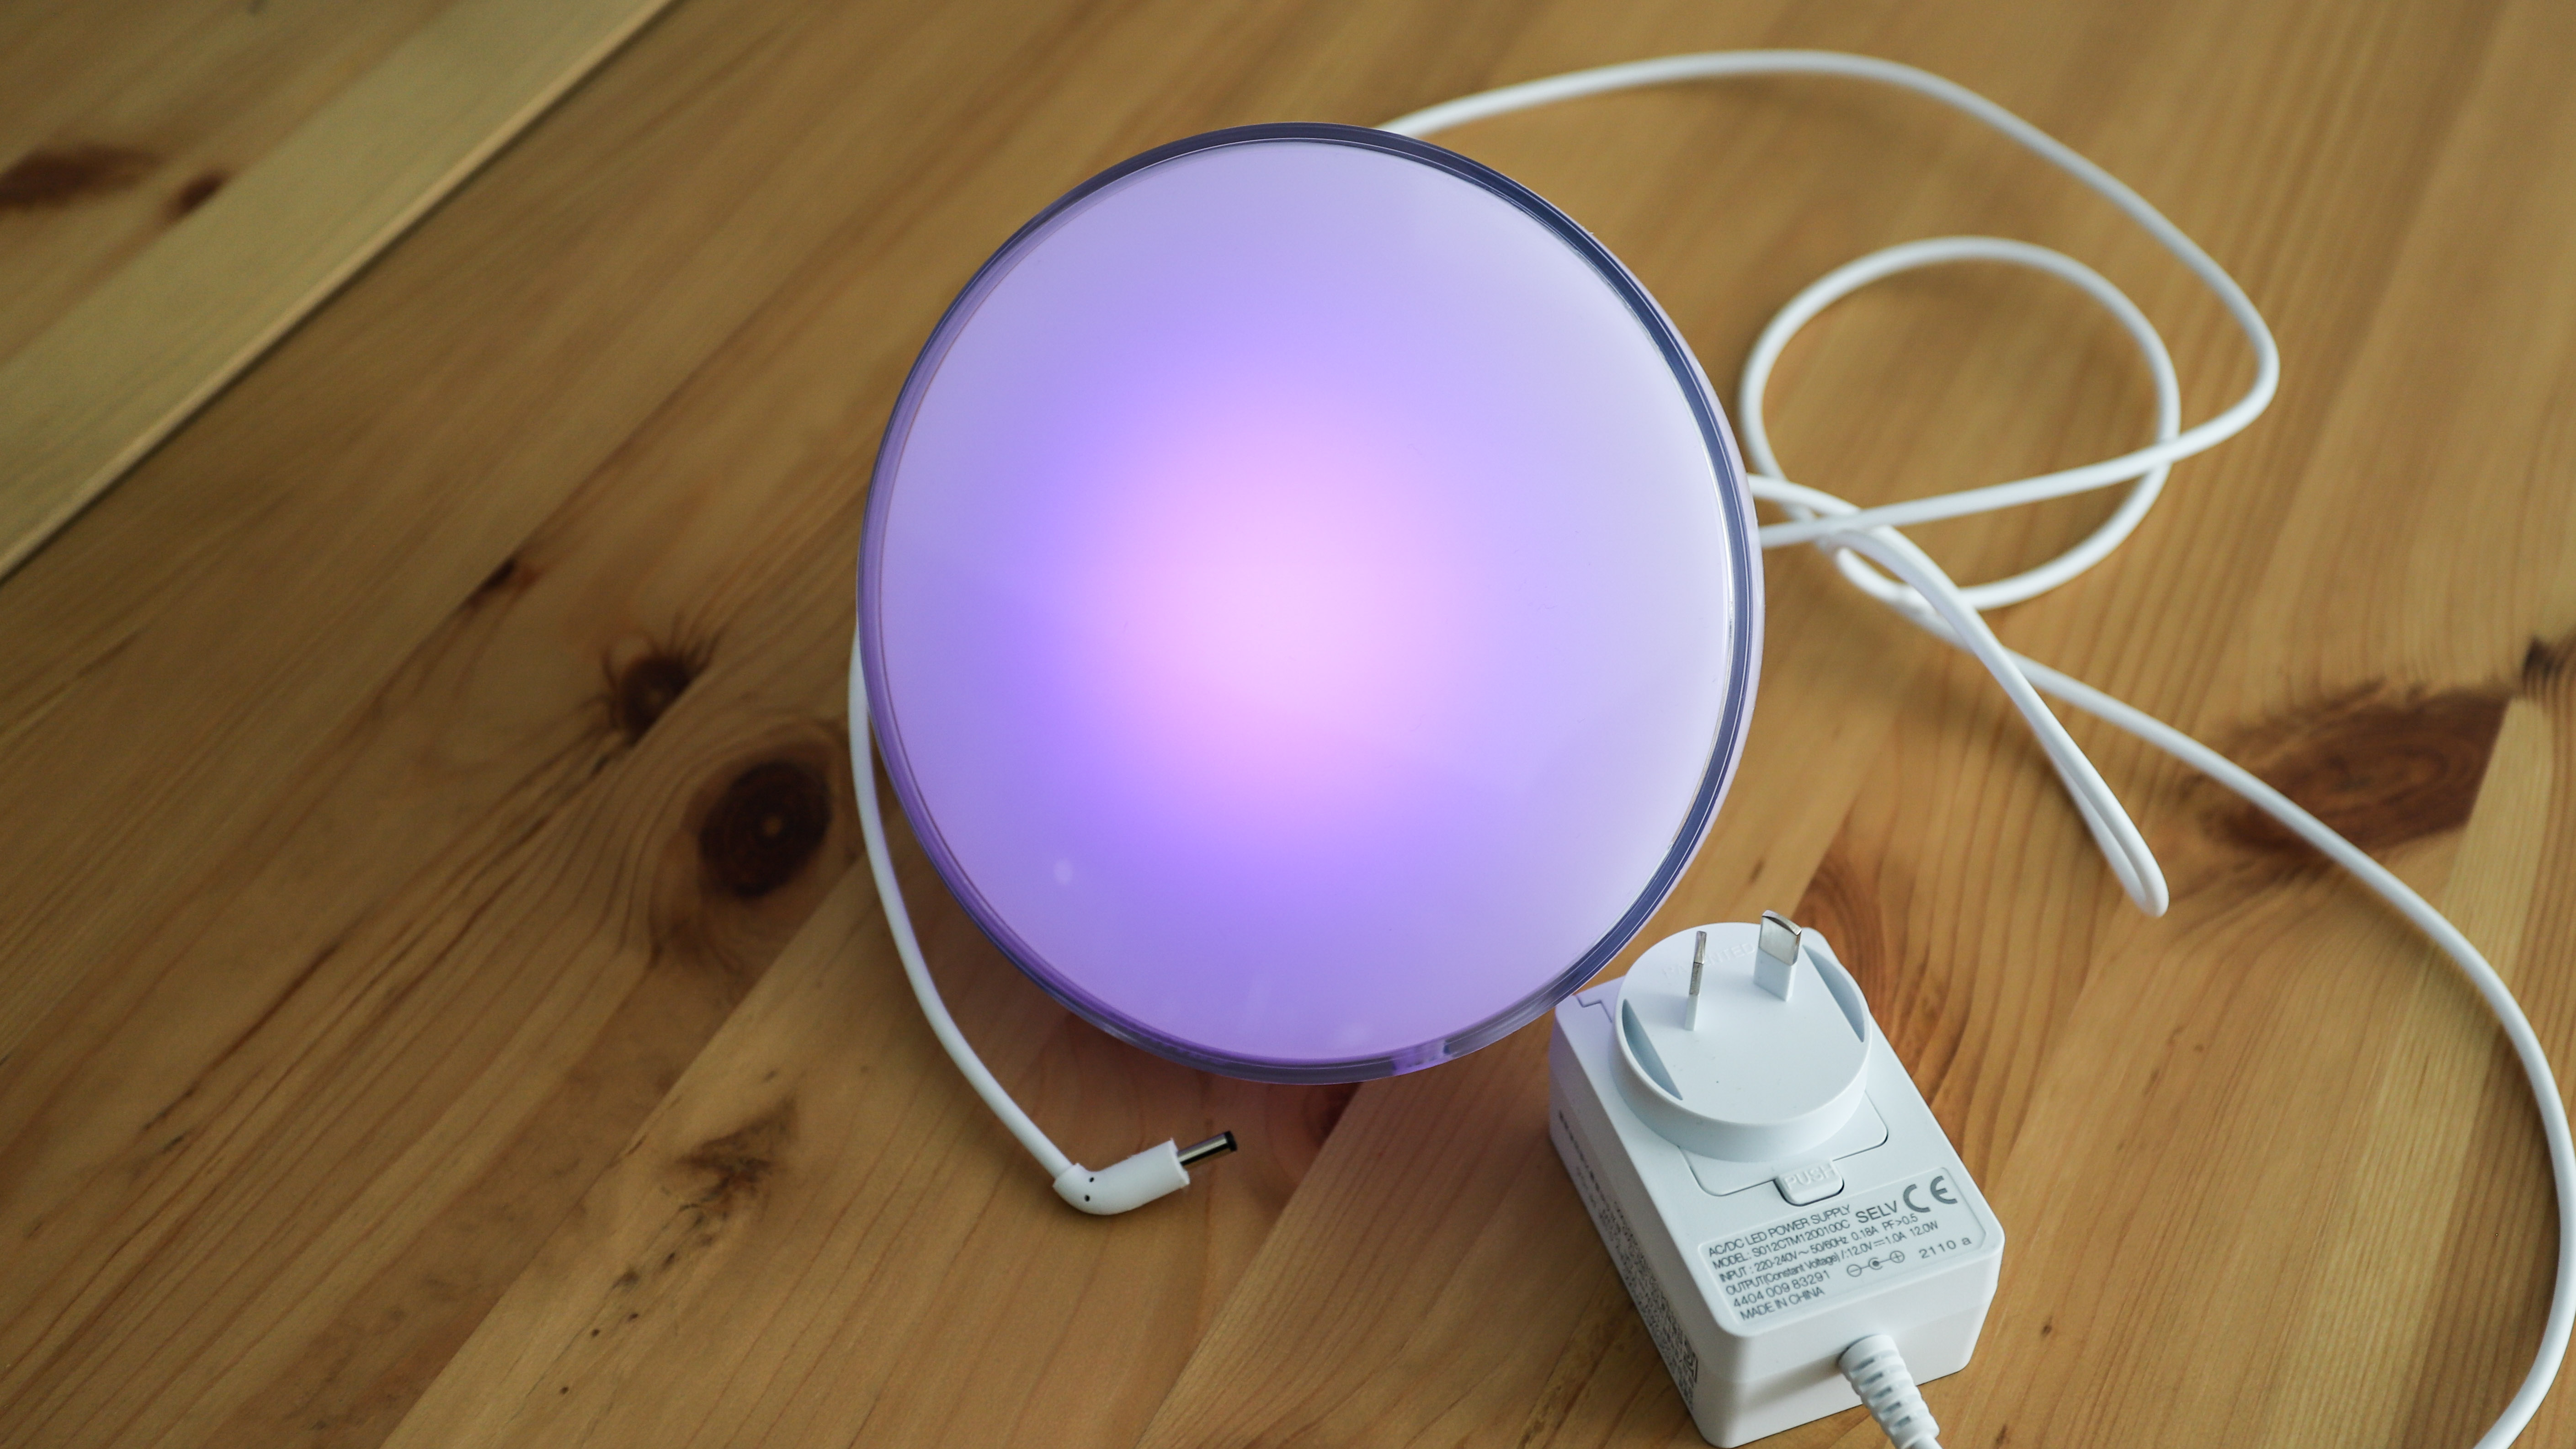 Philips Hue Go 2 in purple light with charger on a table